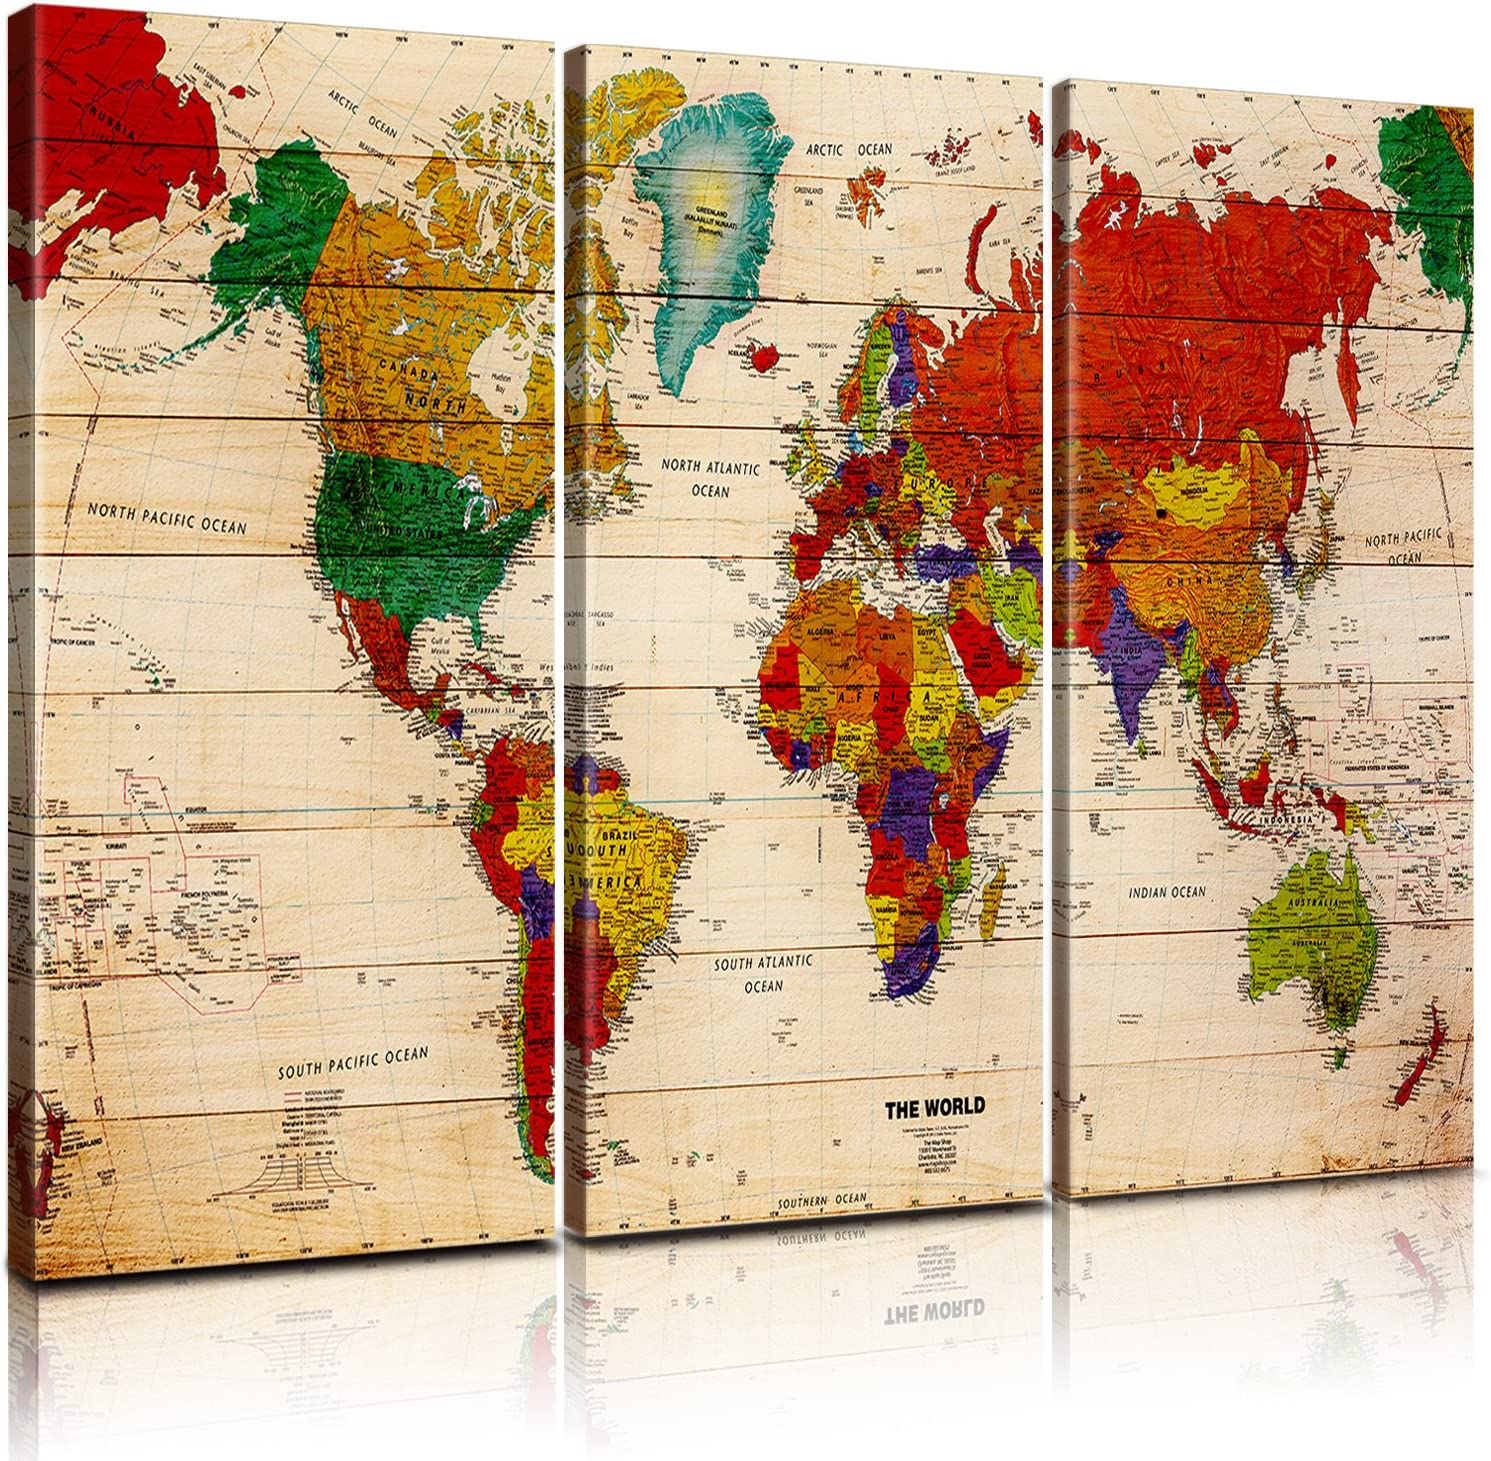 Aged  Vintage World Map Texture And Art Print Home Decor Wall Art Poster C